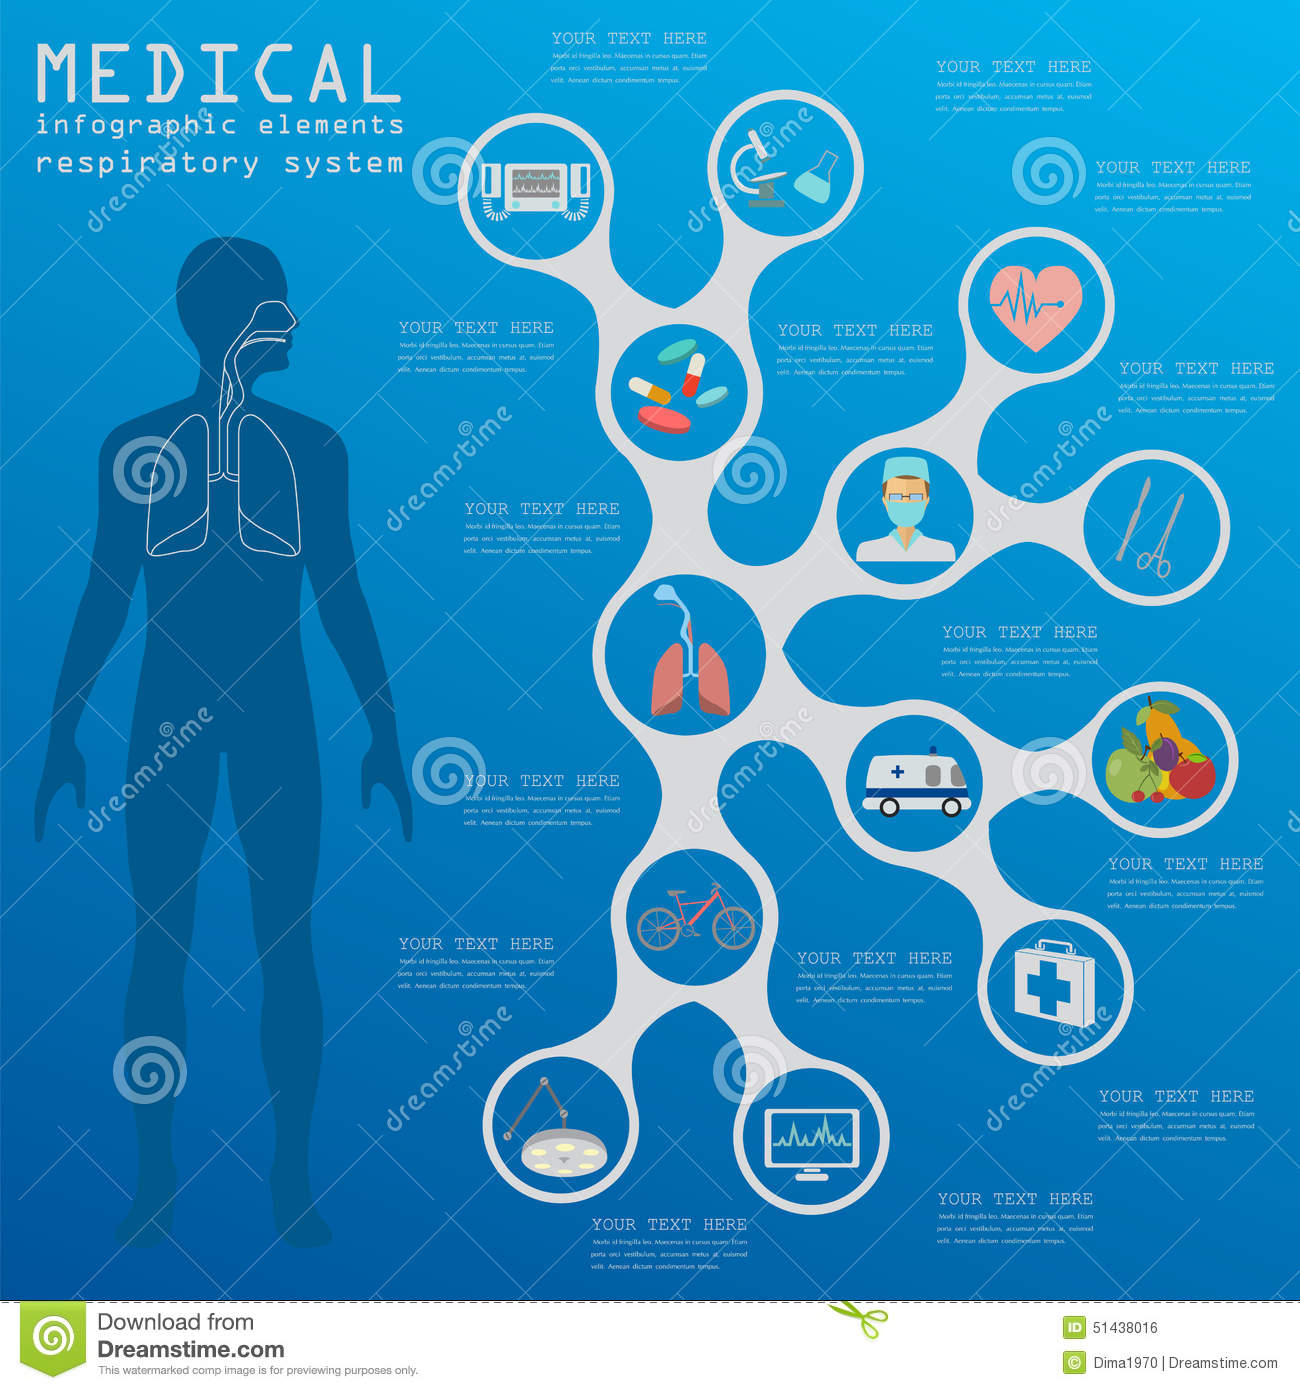 Medical And Healthcare Infographic, Respiratory System